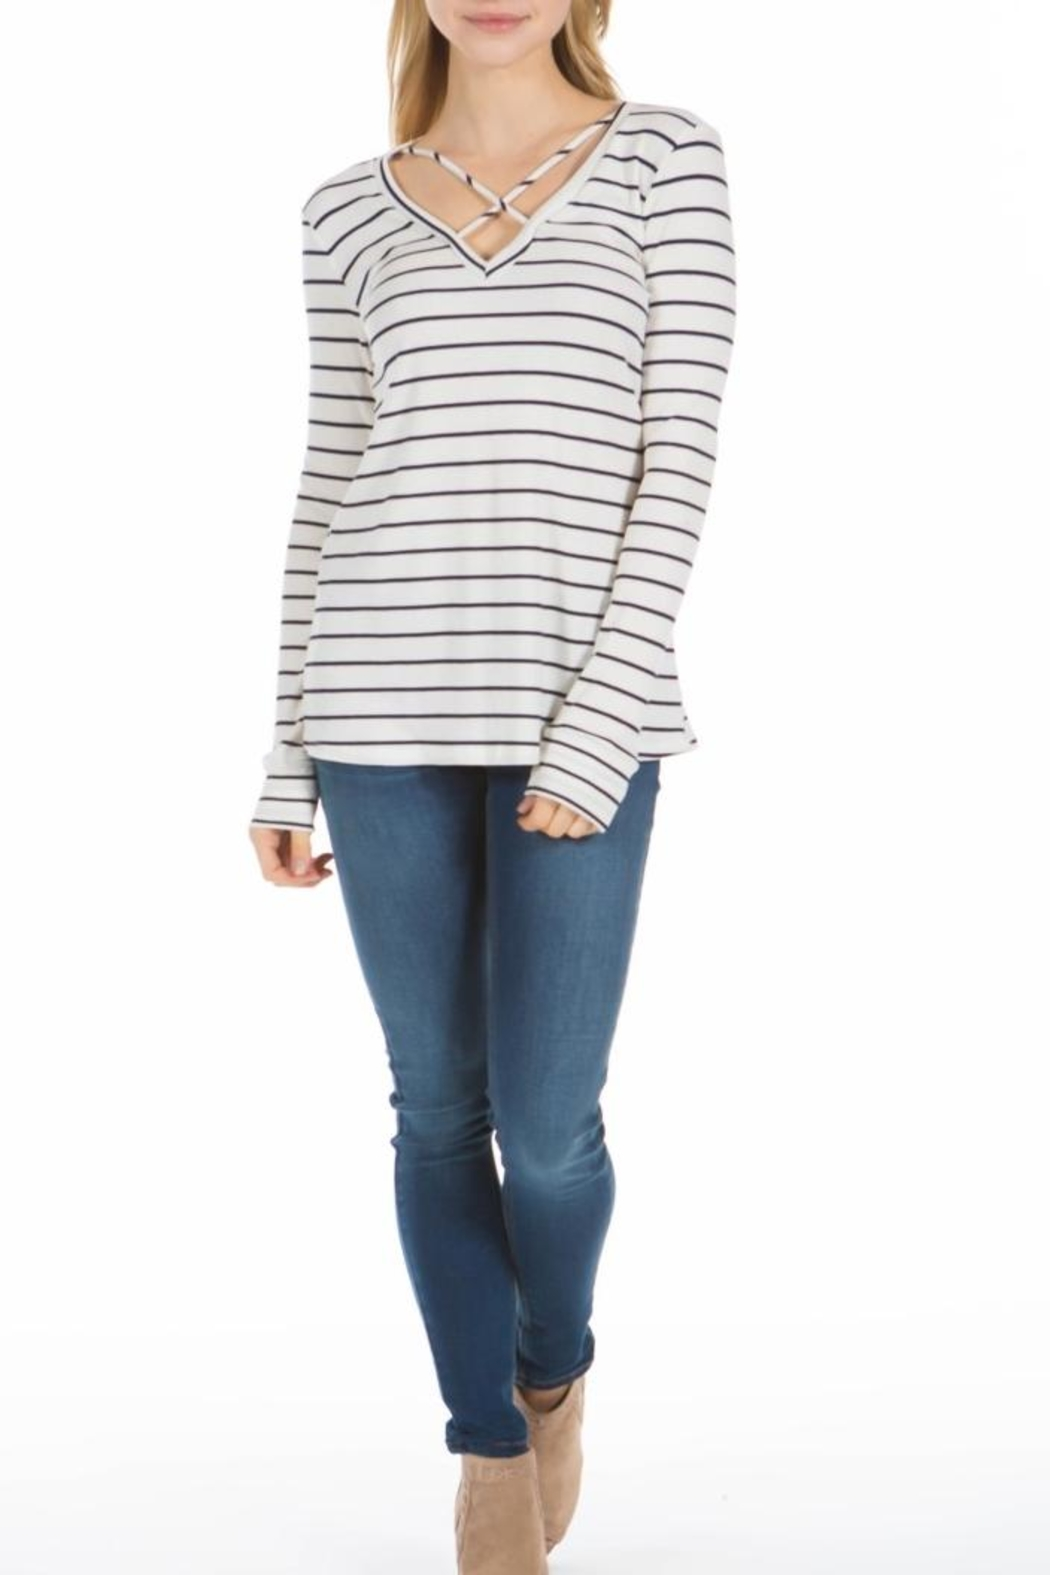 PPLA Clothing Cal Striped Knit Top - Main Image